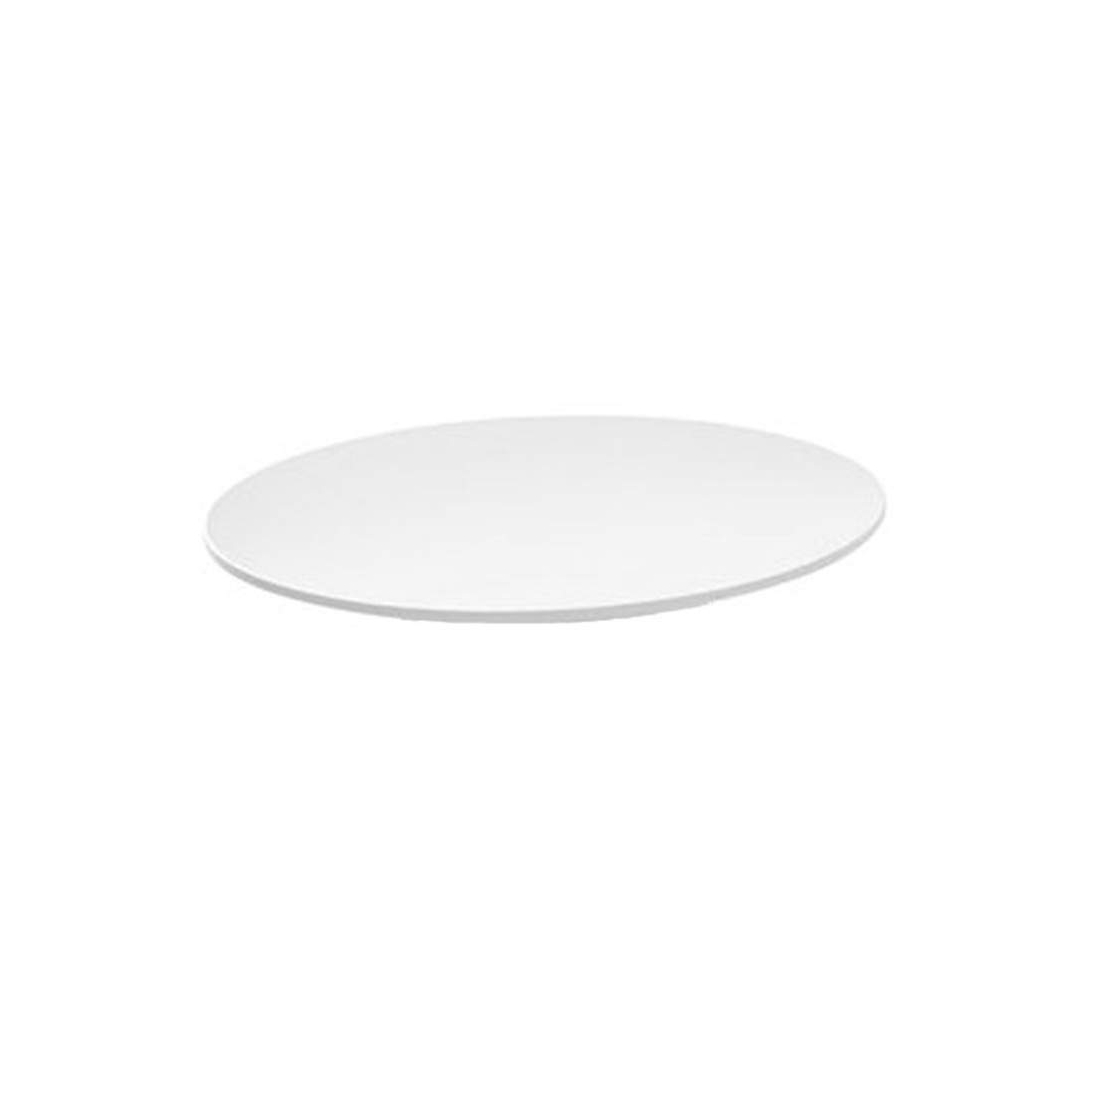 Plateau pour table design myyour liberty 70 tables - Plateau pour table a manger ...